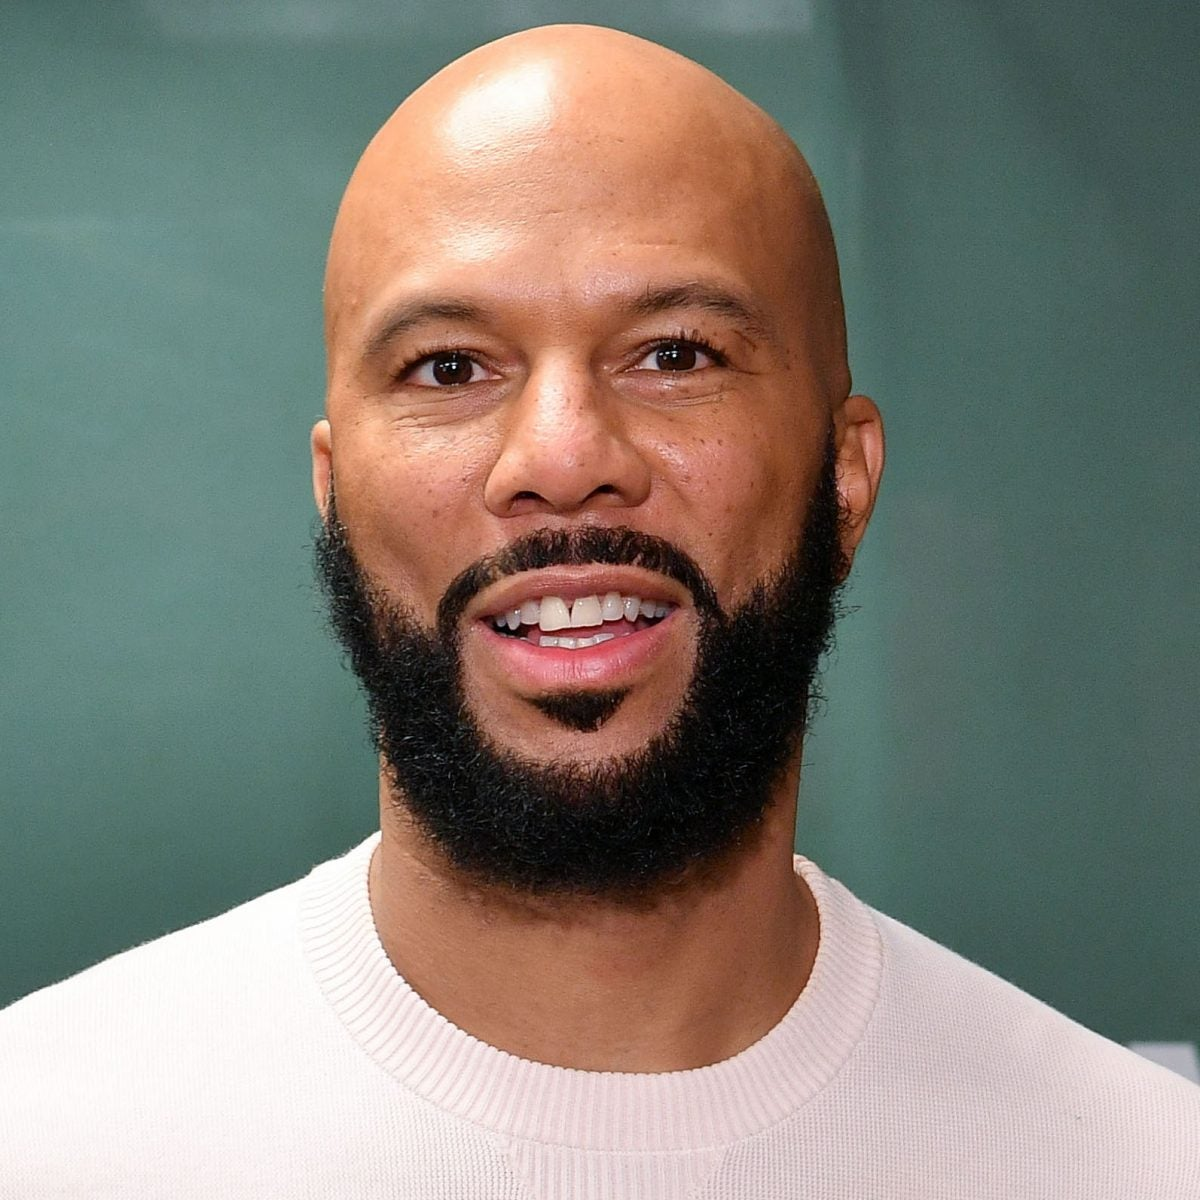 Exclusive: Common's New Health Series 'Com + Well' Is His Latest Form Of Activism